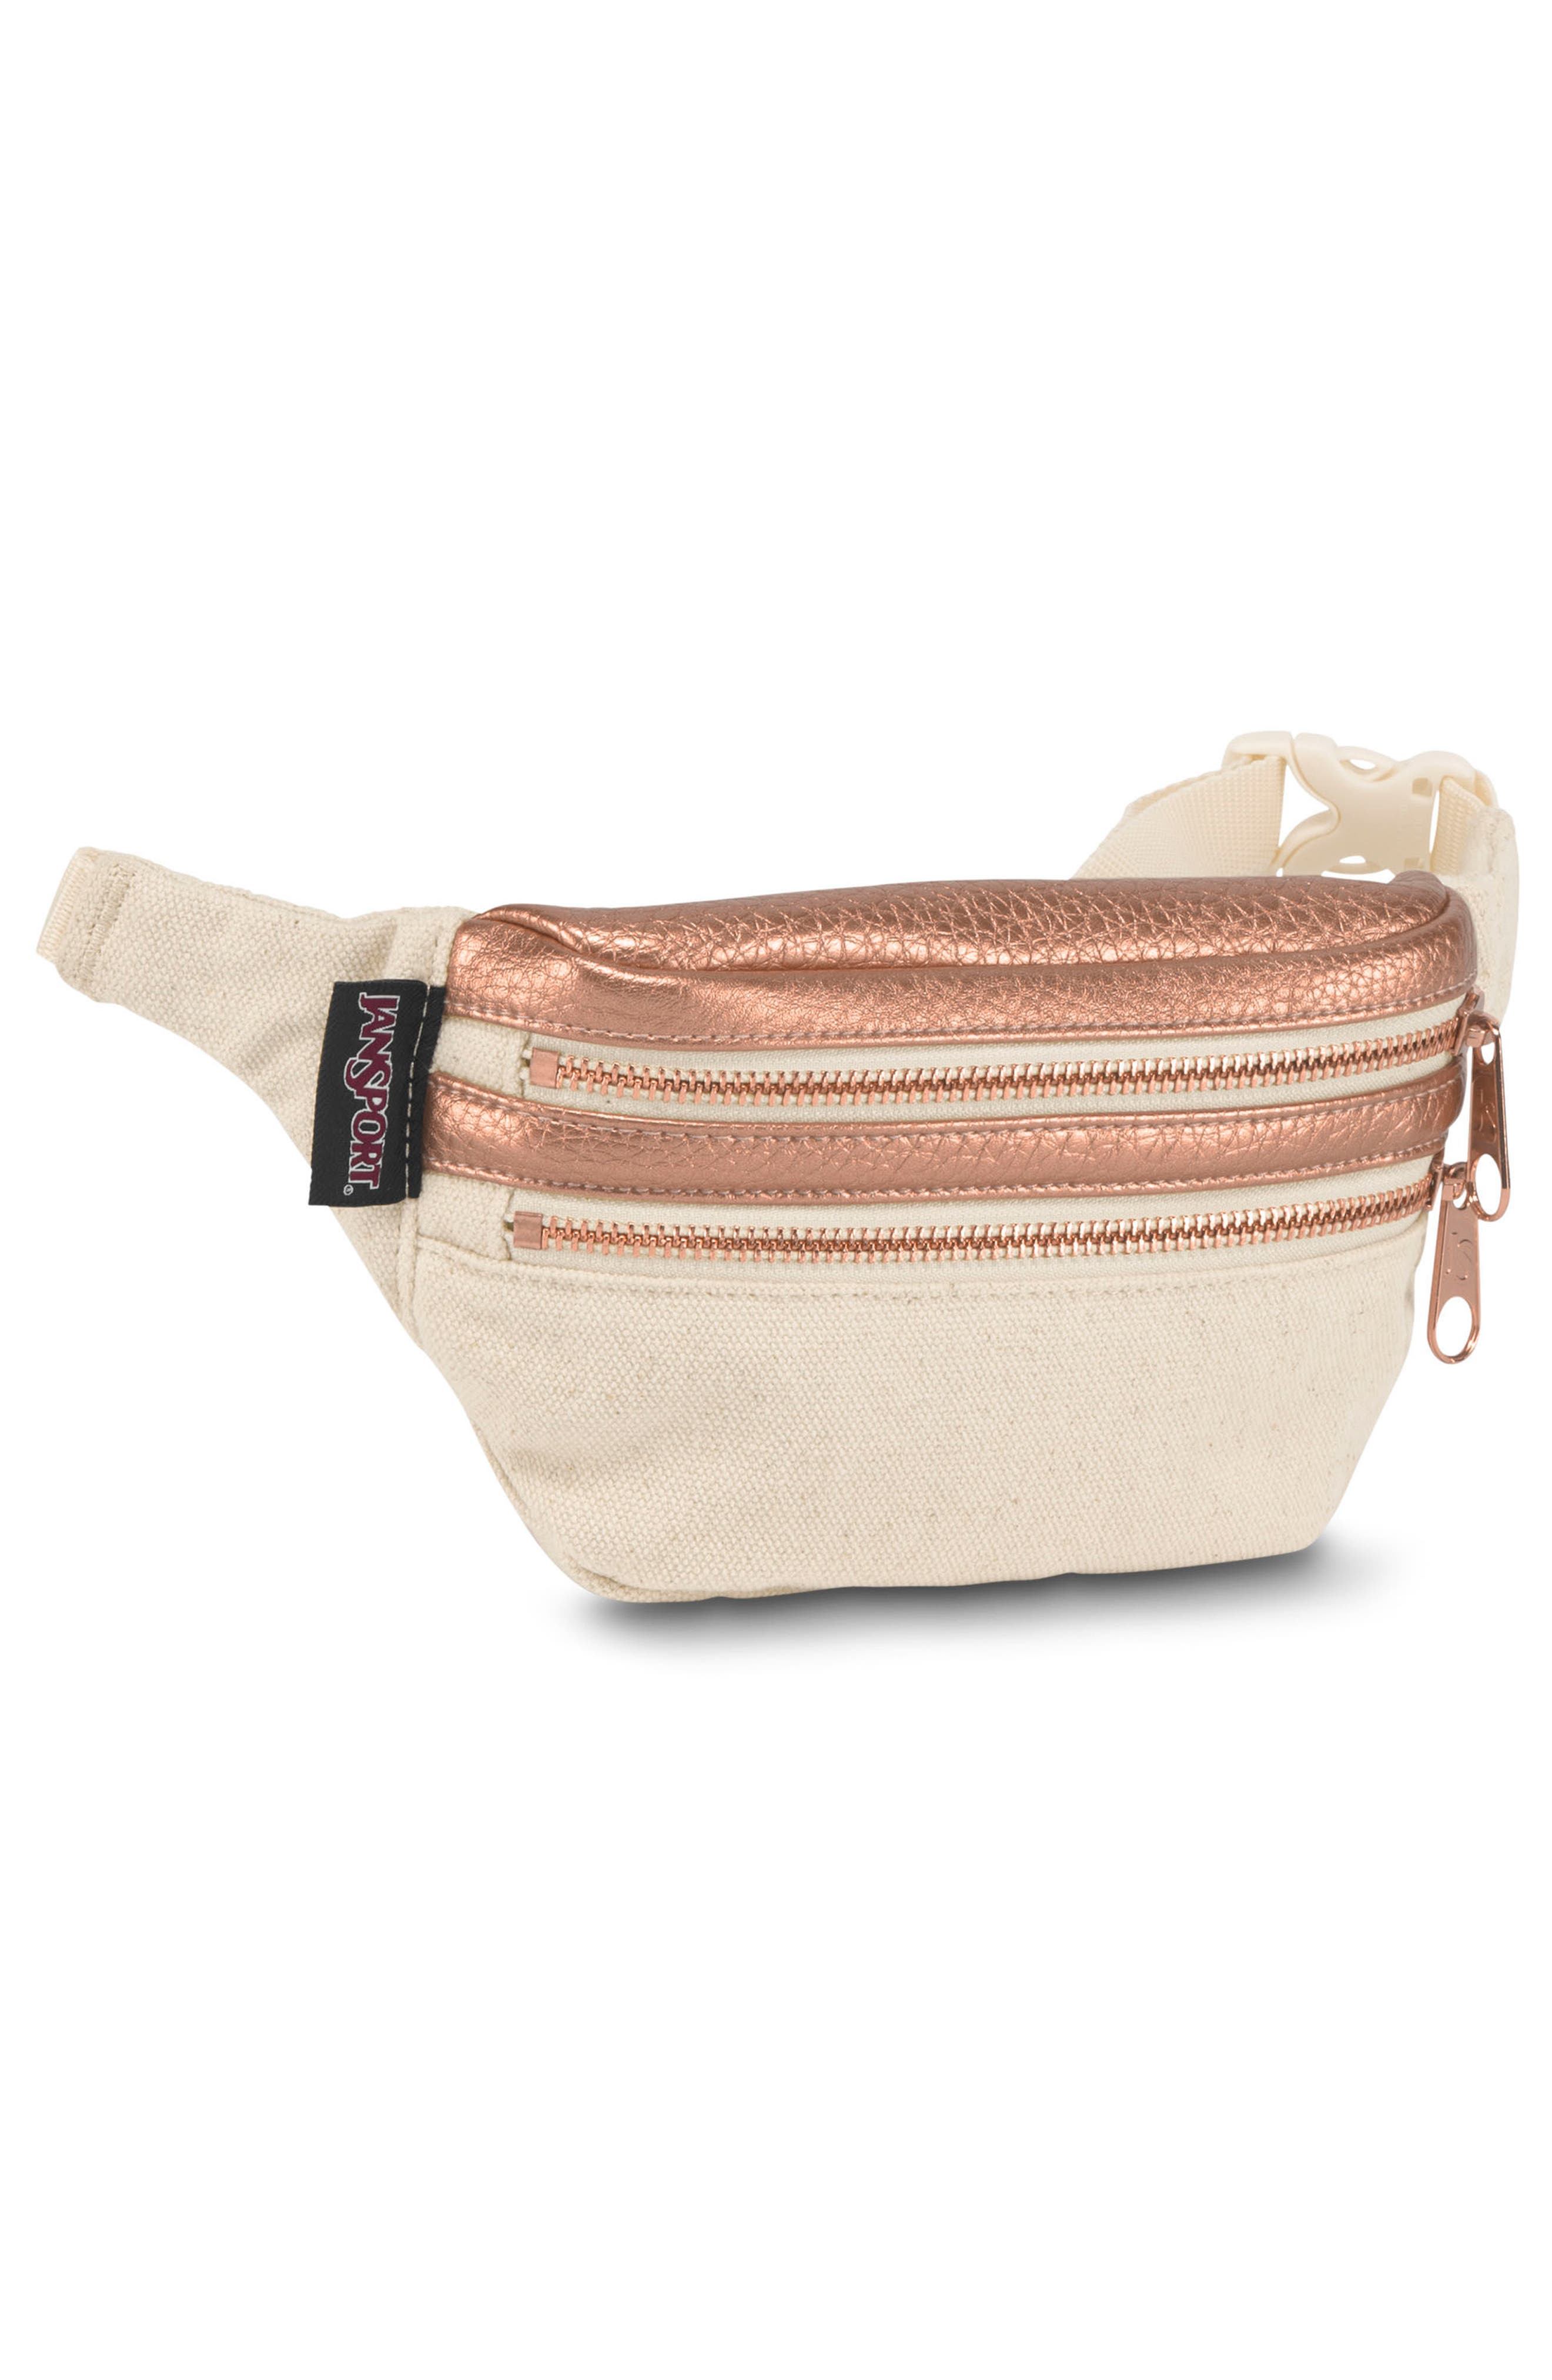 Hippyland Fanny Pack,                             Alternate thumbnail 4, color,                             Rose Gold